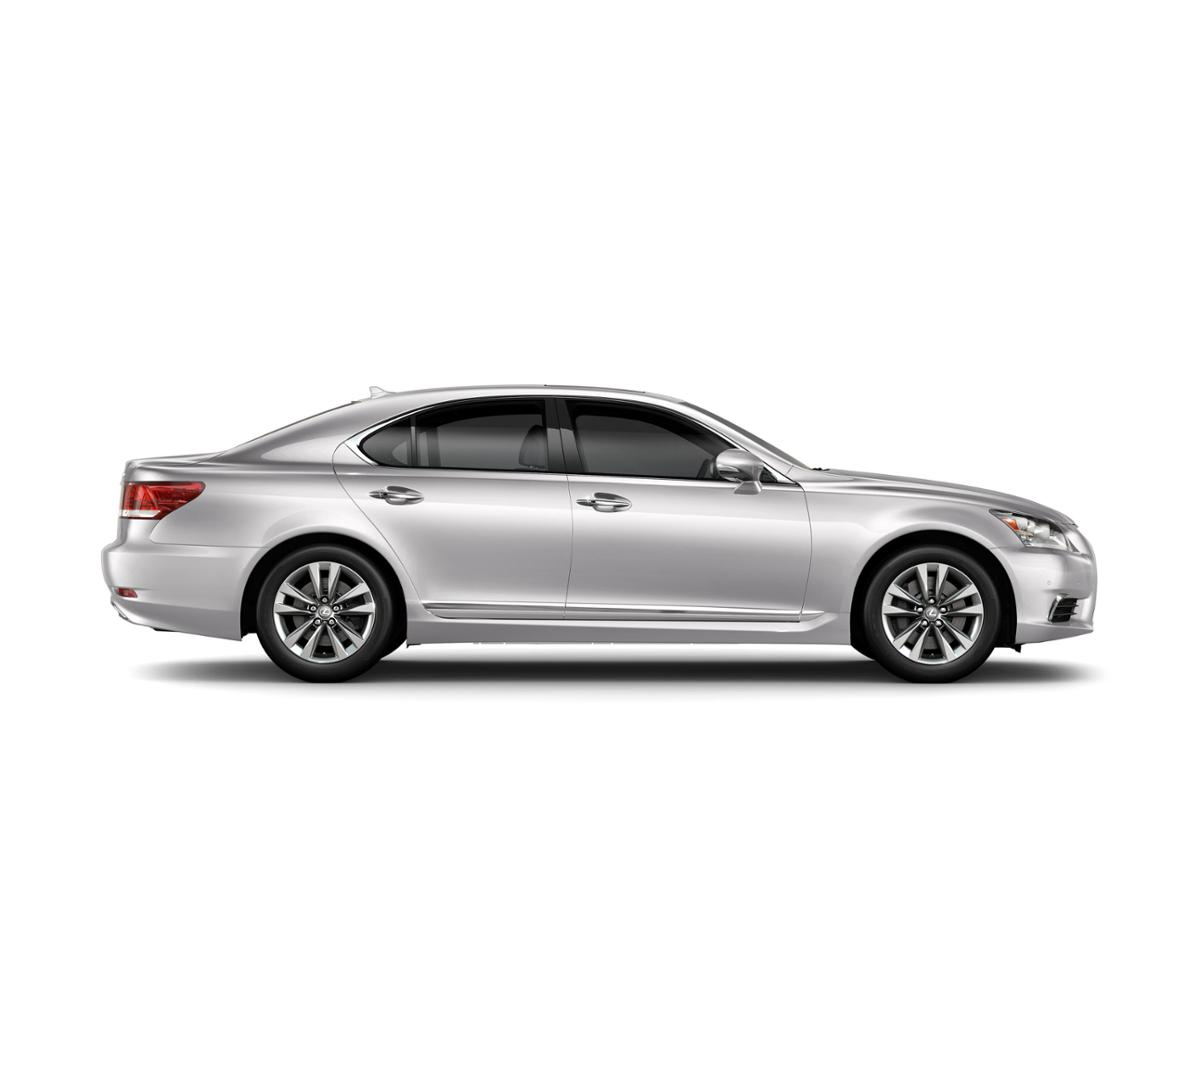 2013 Lexus 460 For Sale: Certified Eminent White Pearl 2017 Lexus LS 460 RWD For